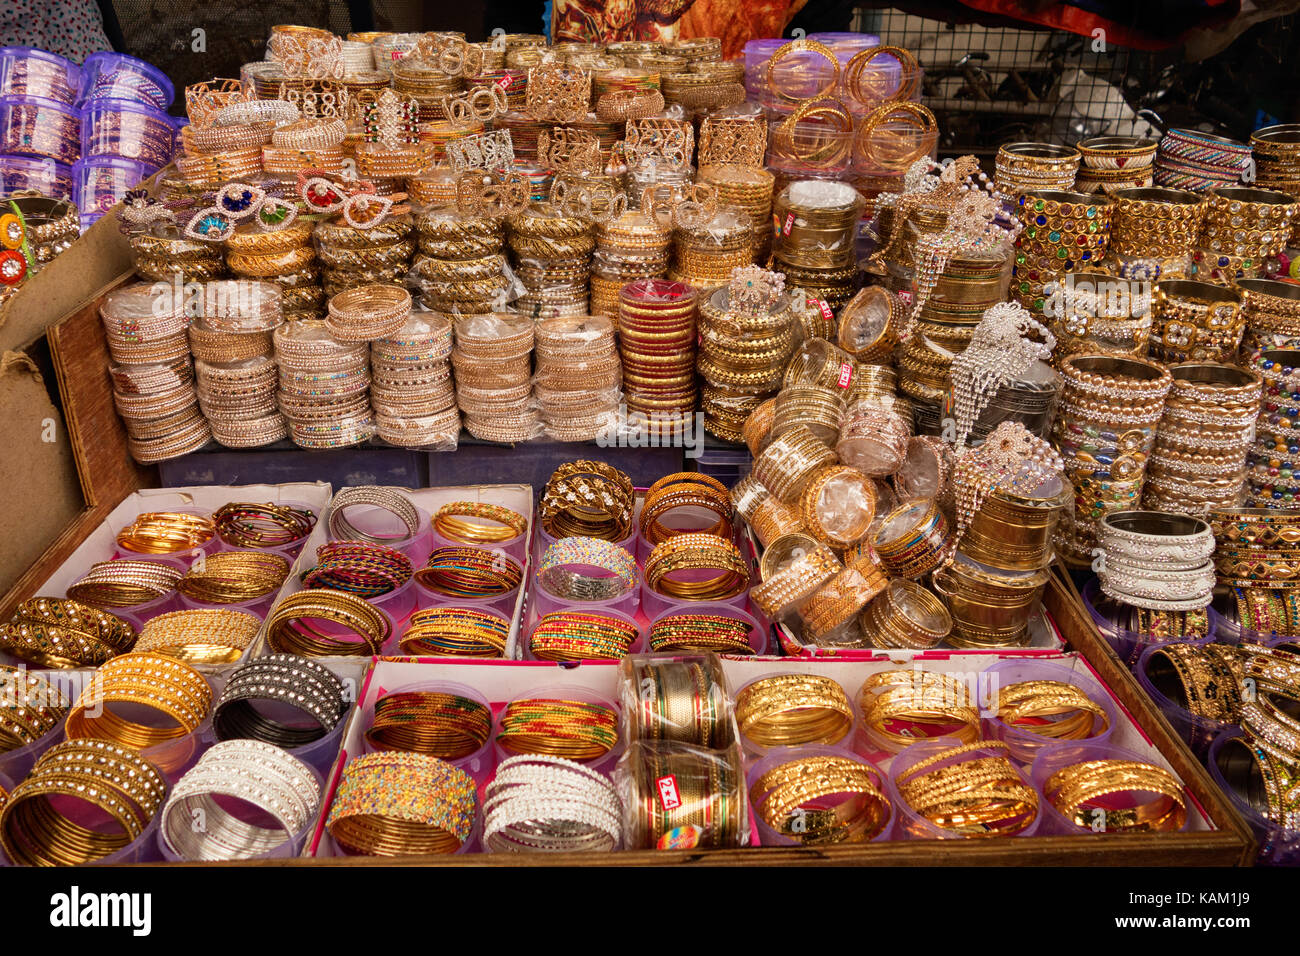 Bangles for sale at Lad Bazaar in Hyderabad,India - Stock Image